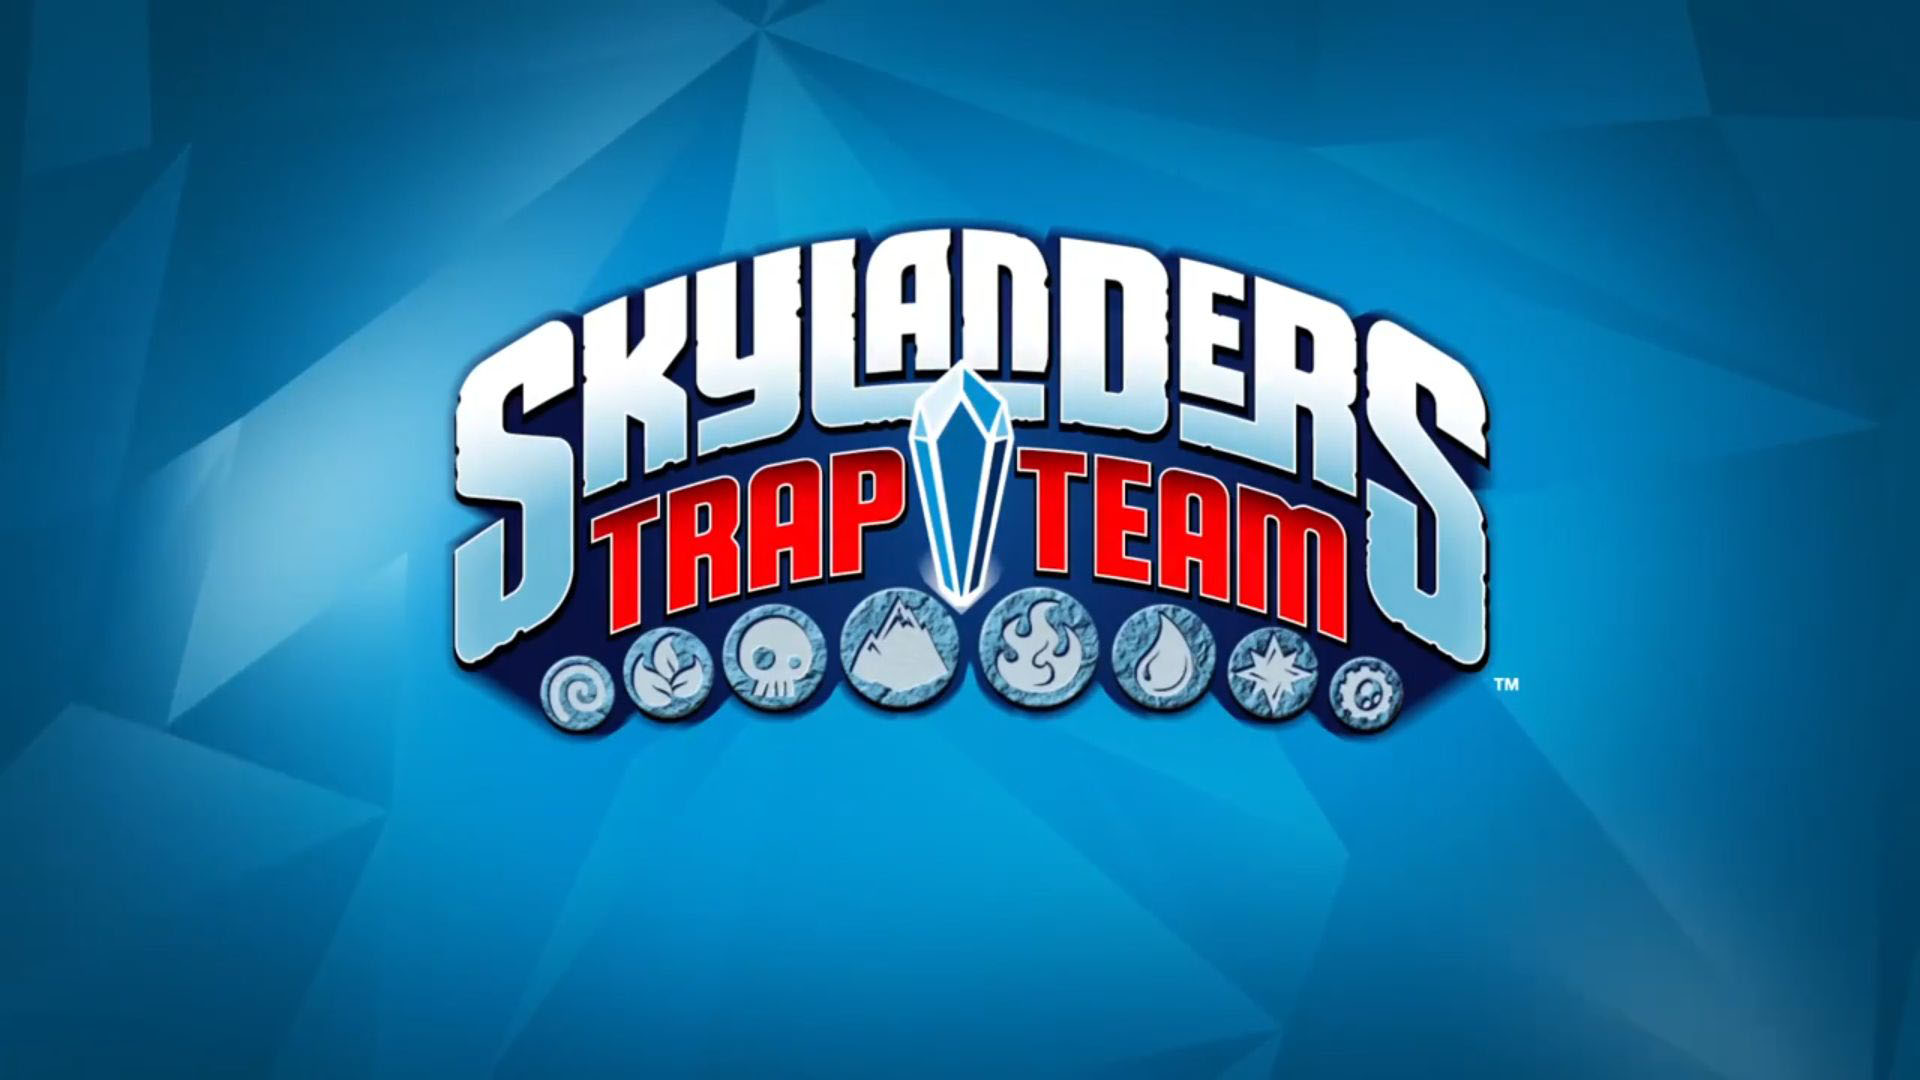 skylanders trap team wallpaper - photo #2